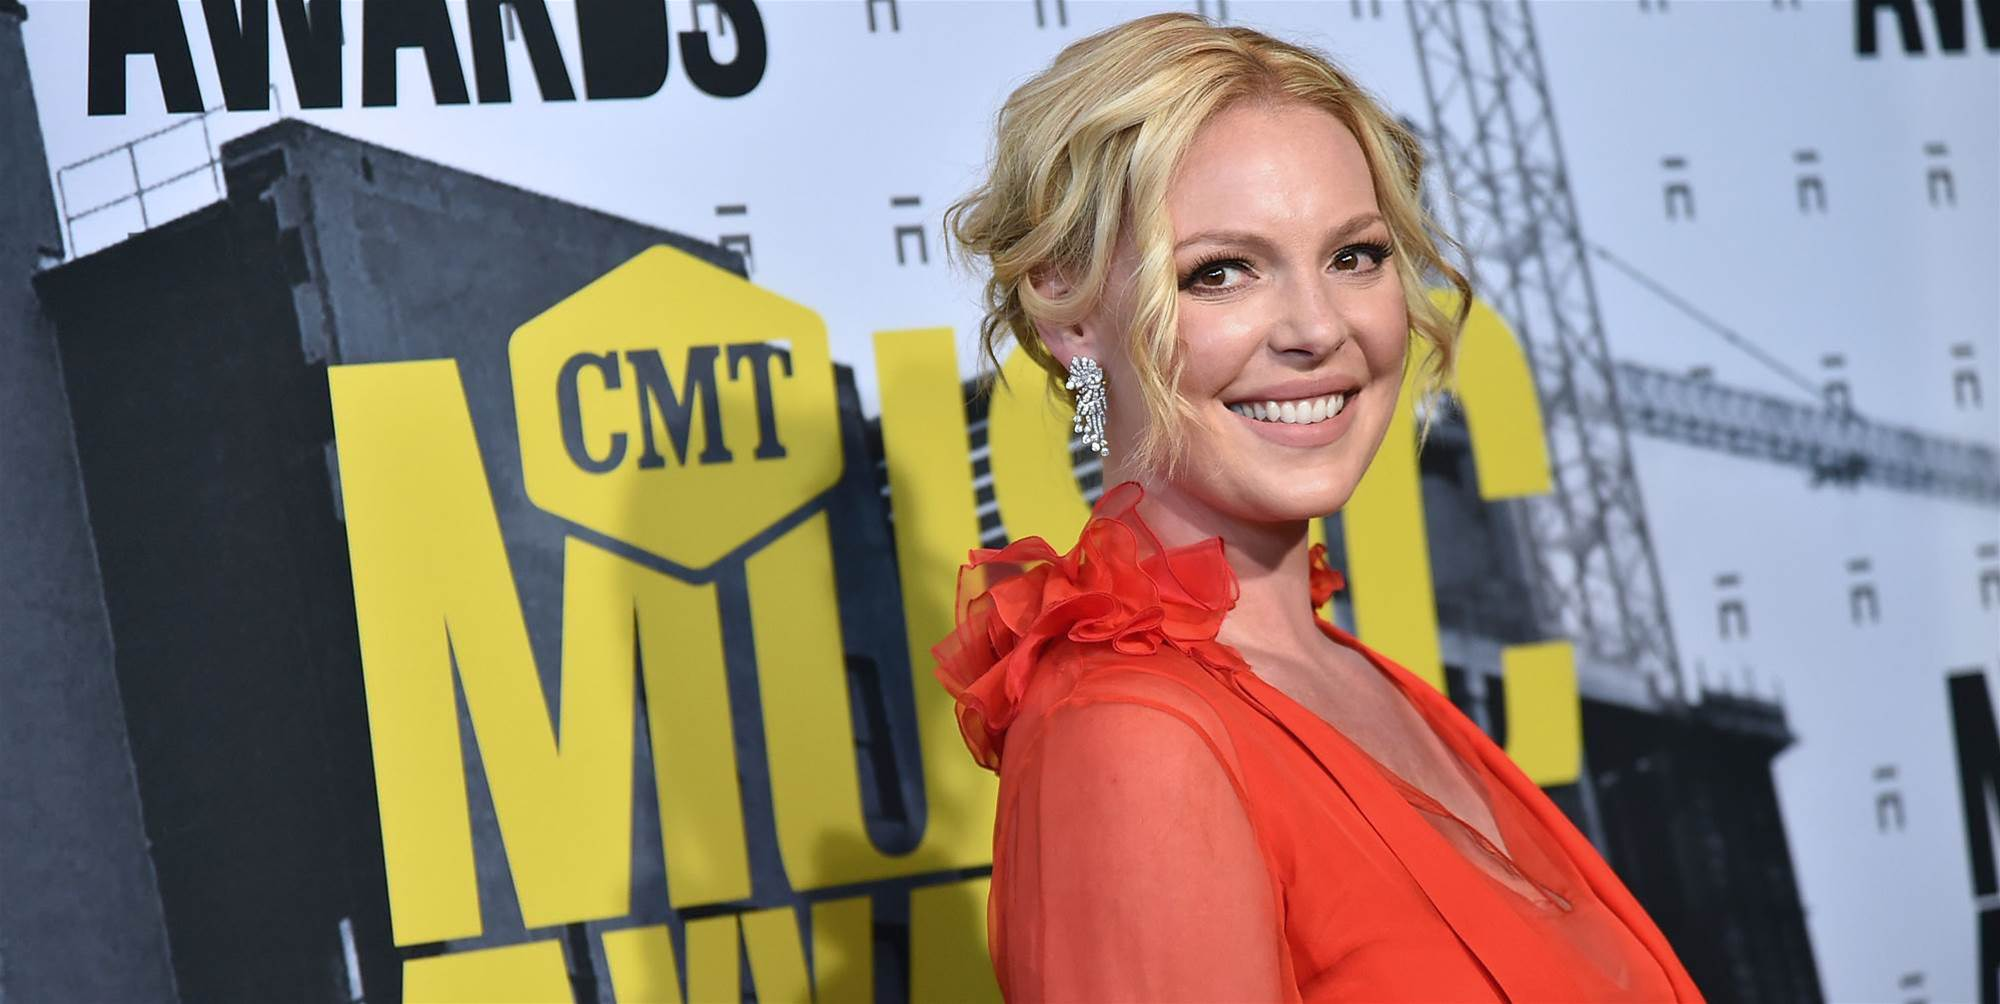 Katherine Heigl Celebrates 40th Birthday With Empowering Message About Ageing